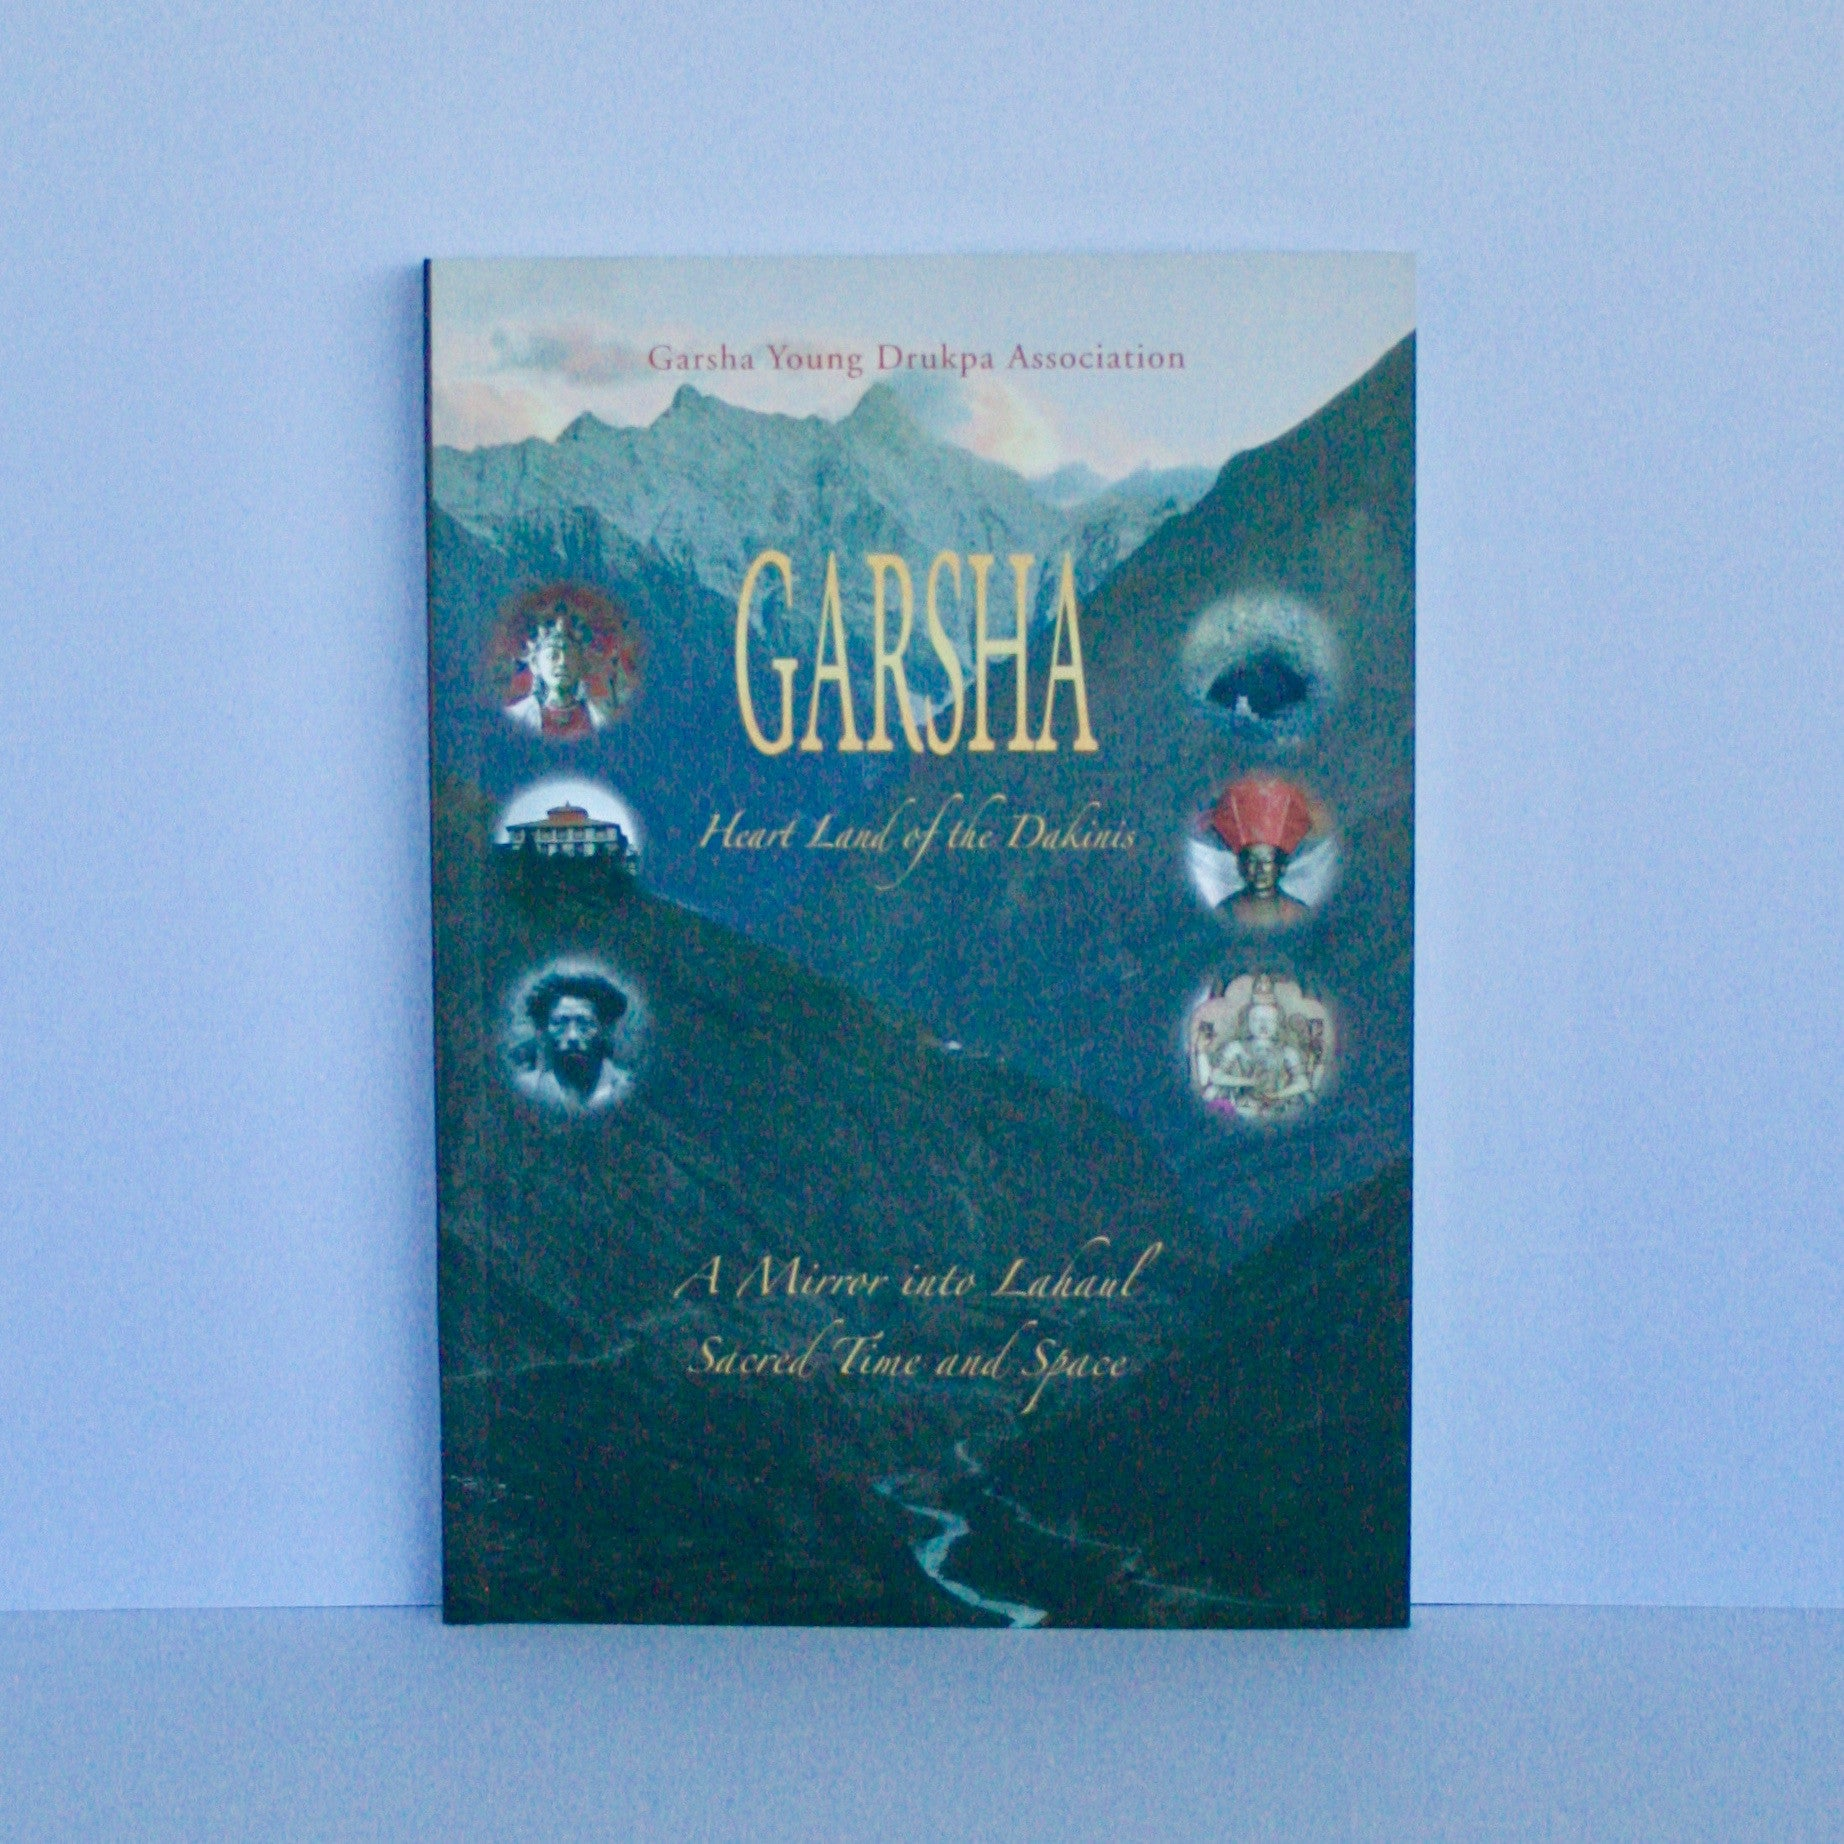 Garsha - Heartland of the Dakinis: A Mirror into Lahaul, Sacred Time and Space. Published by Garsha Young Drukpa Association